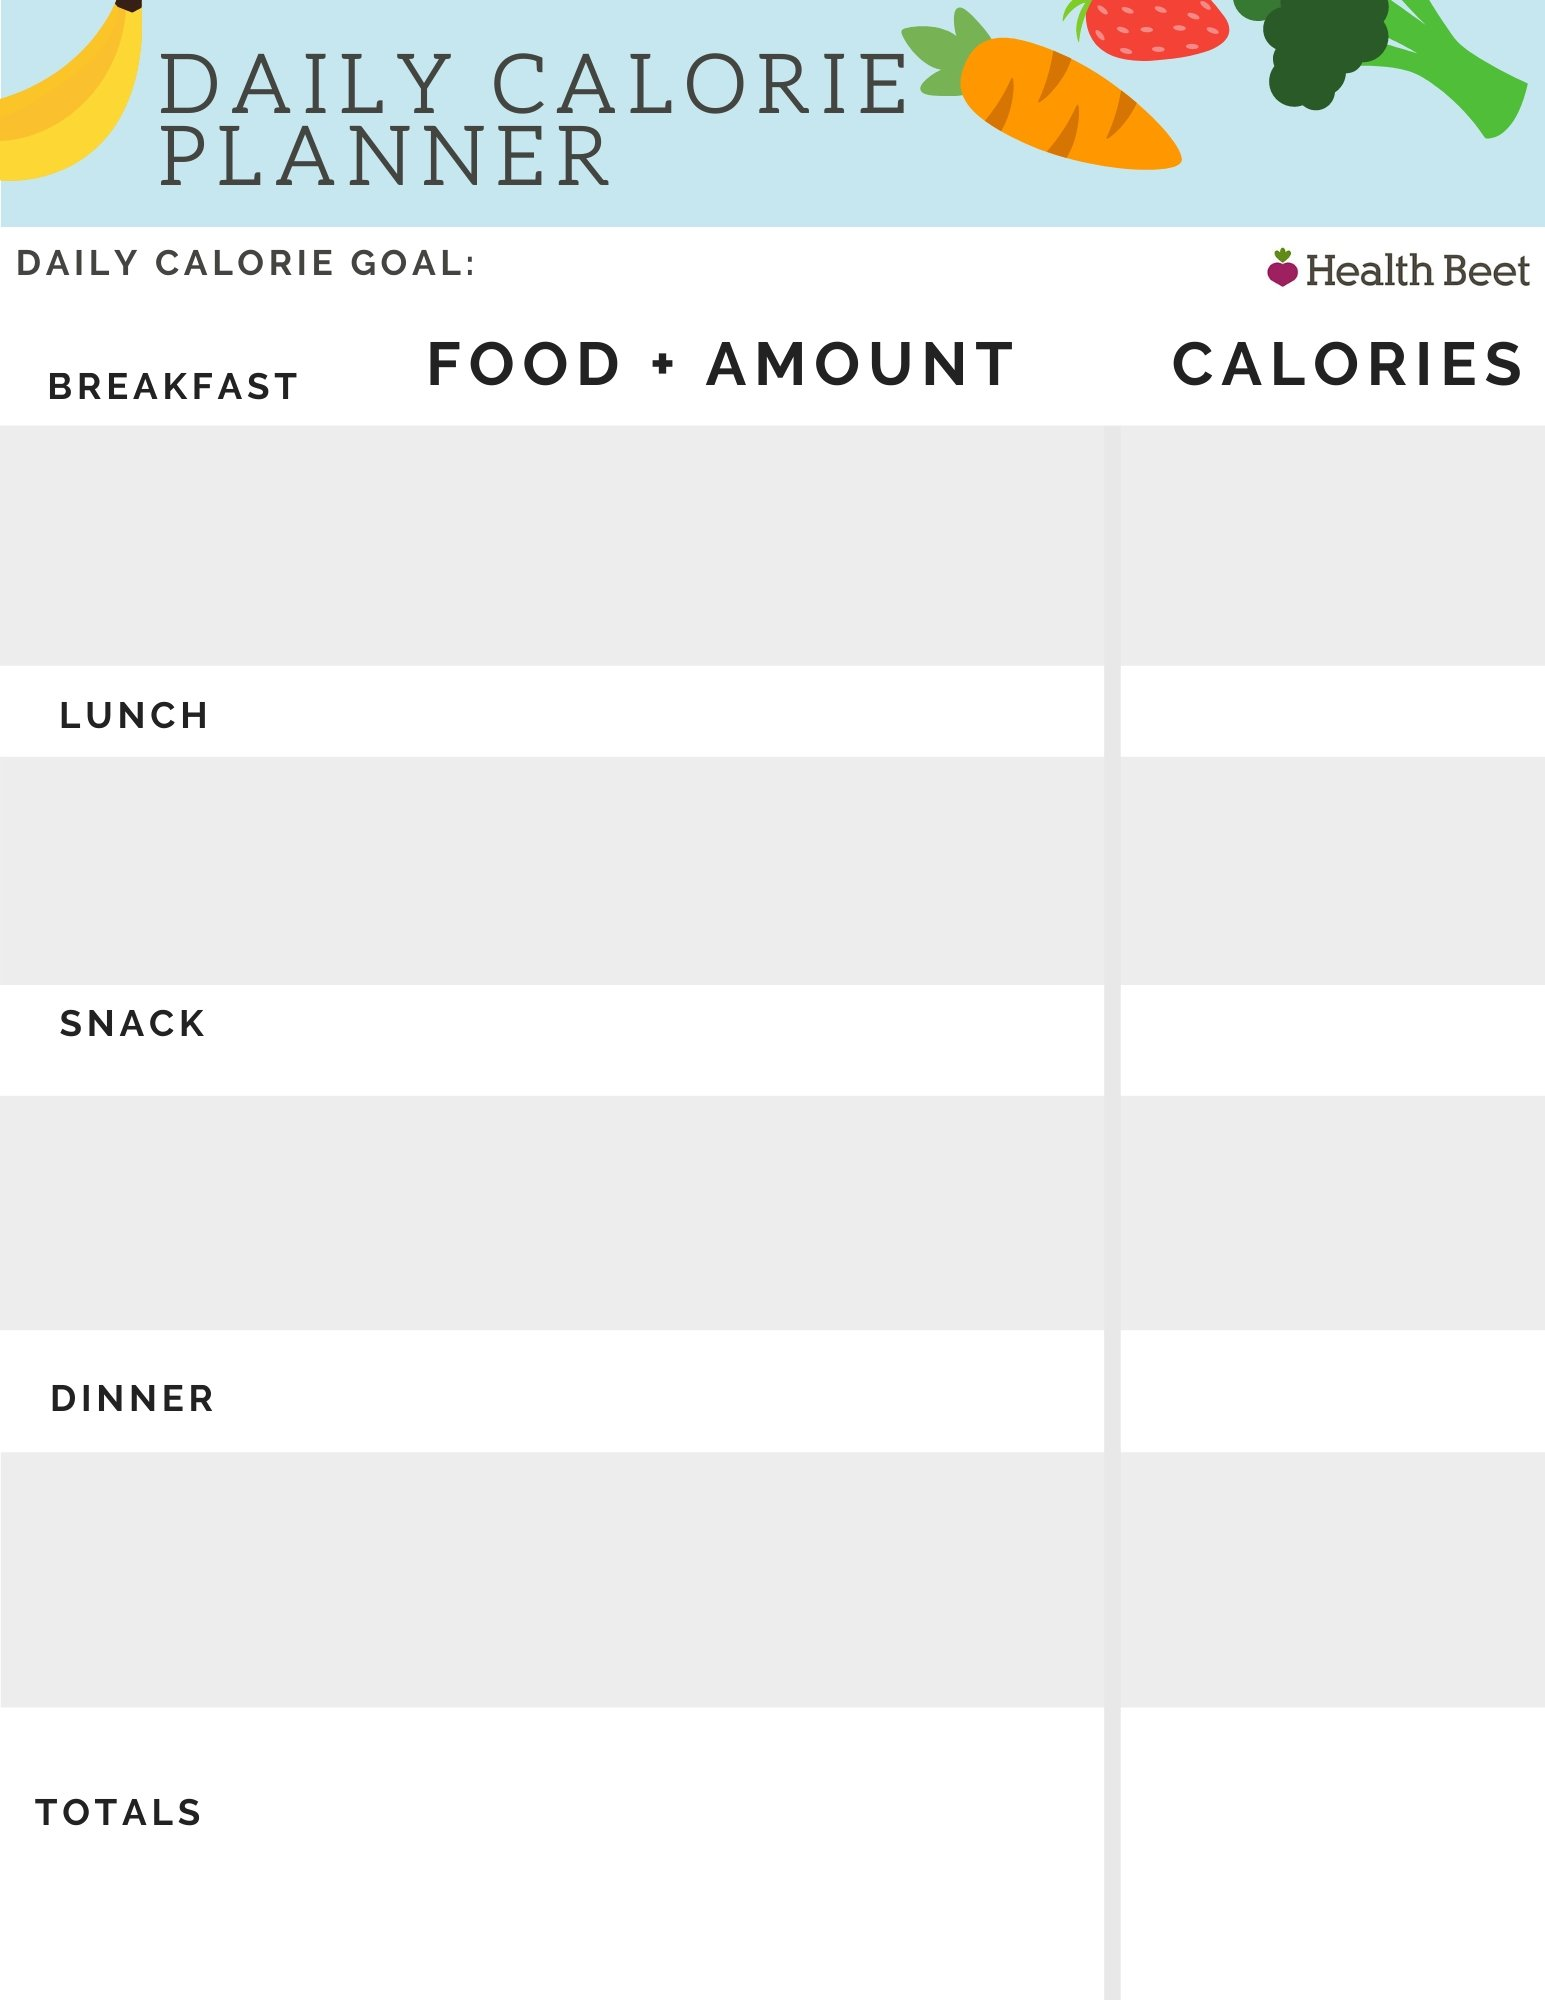 Daily calorie planner for weight loss